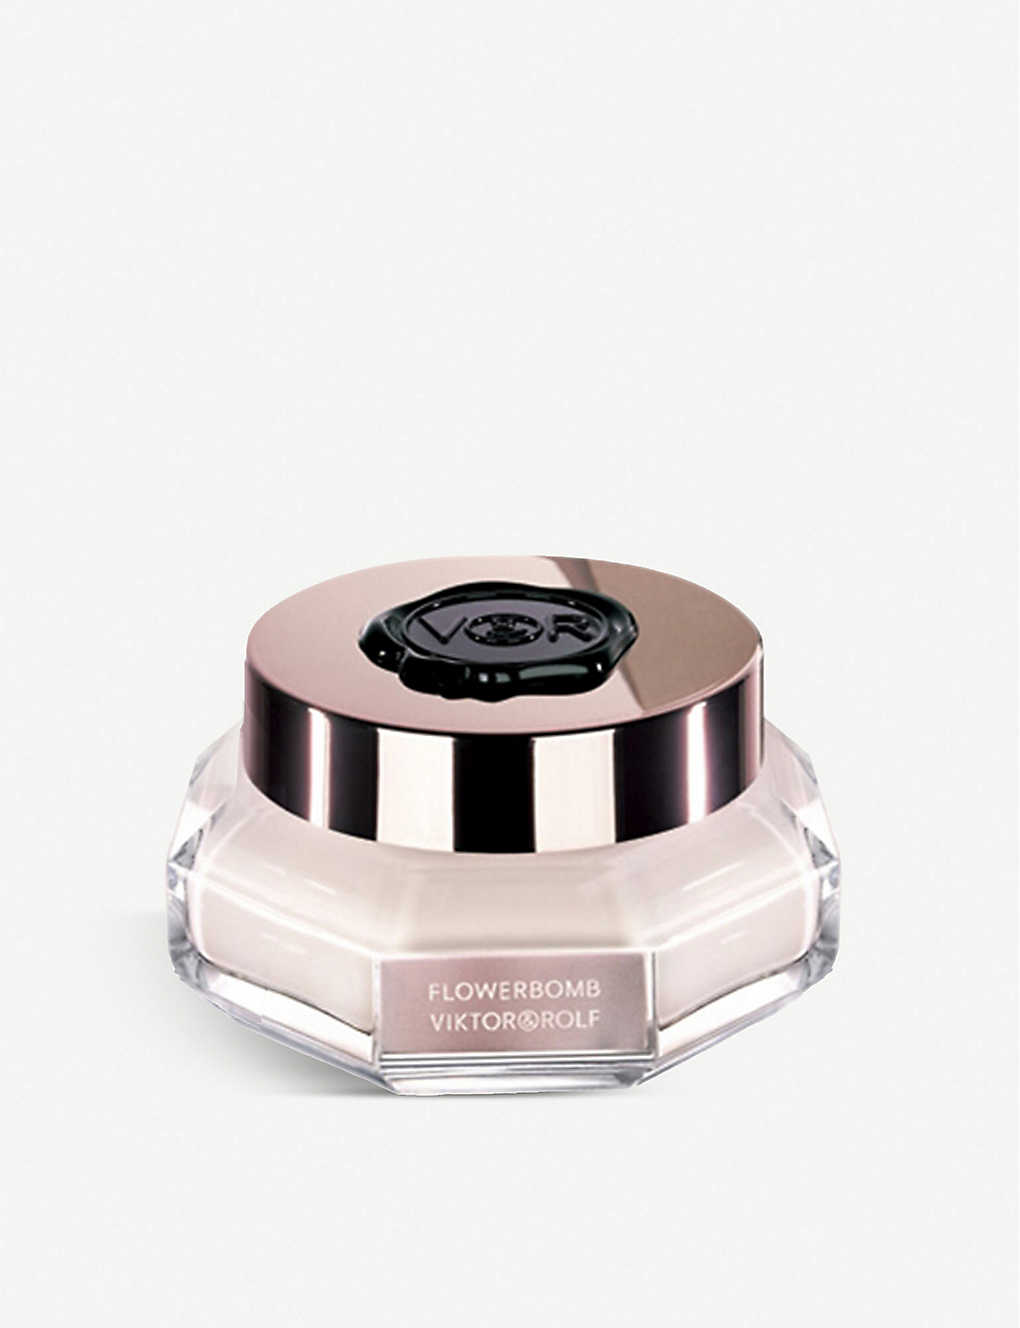 VIKTOR & ROLF: Flowerbomb body cream 200ml